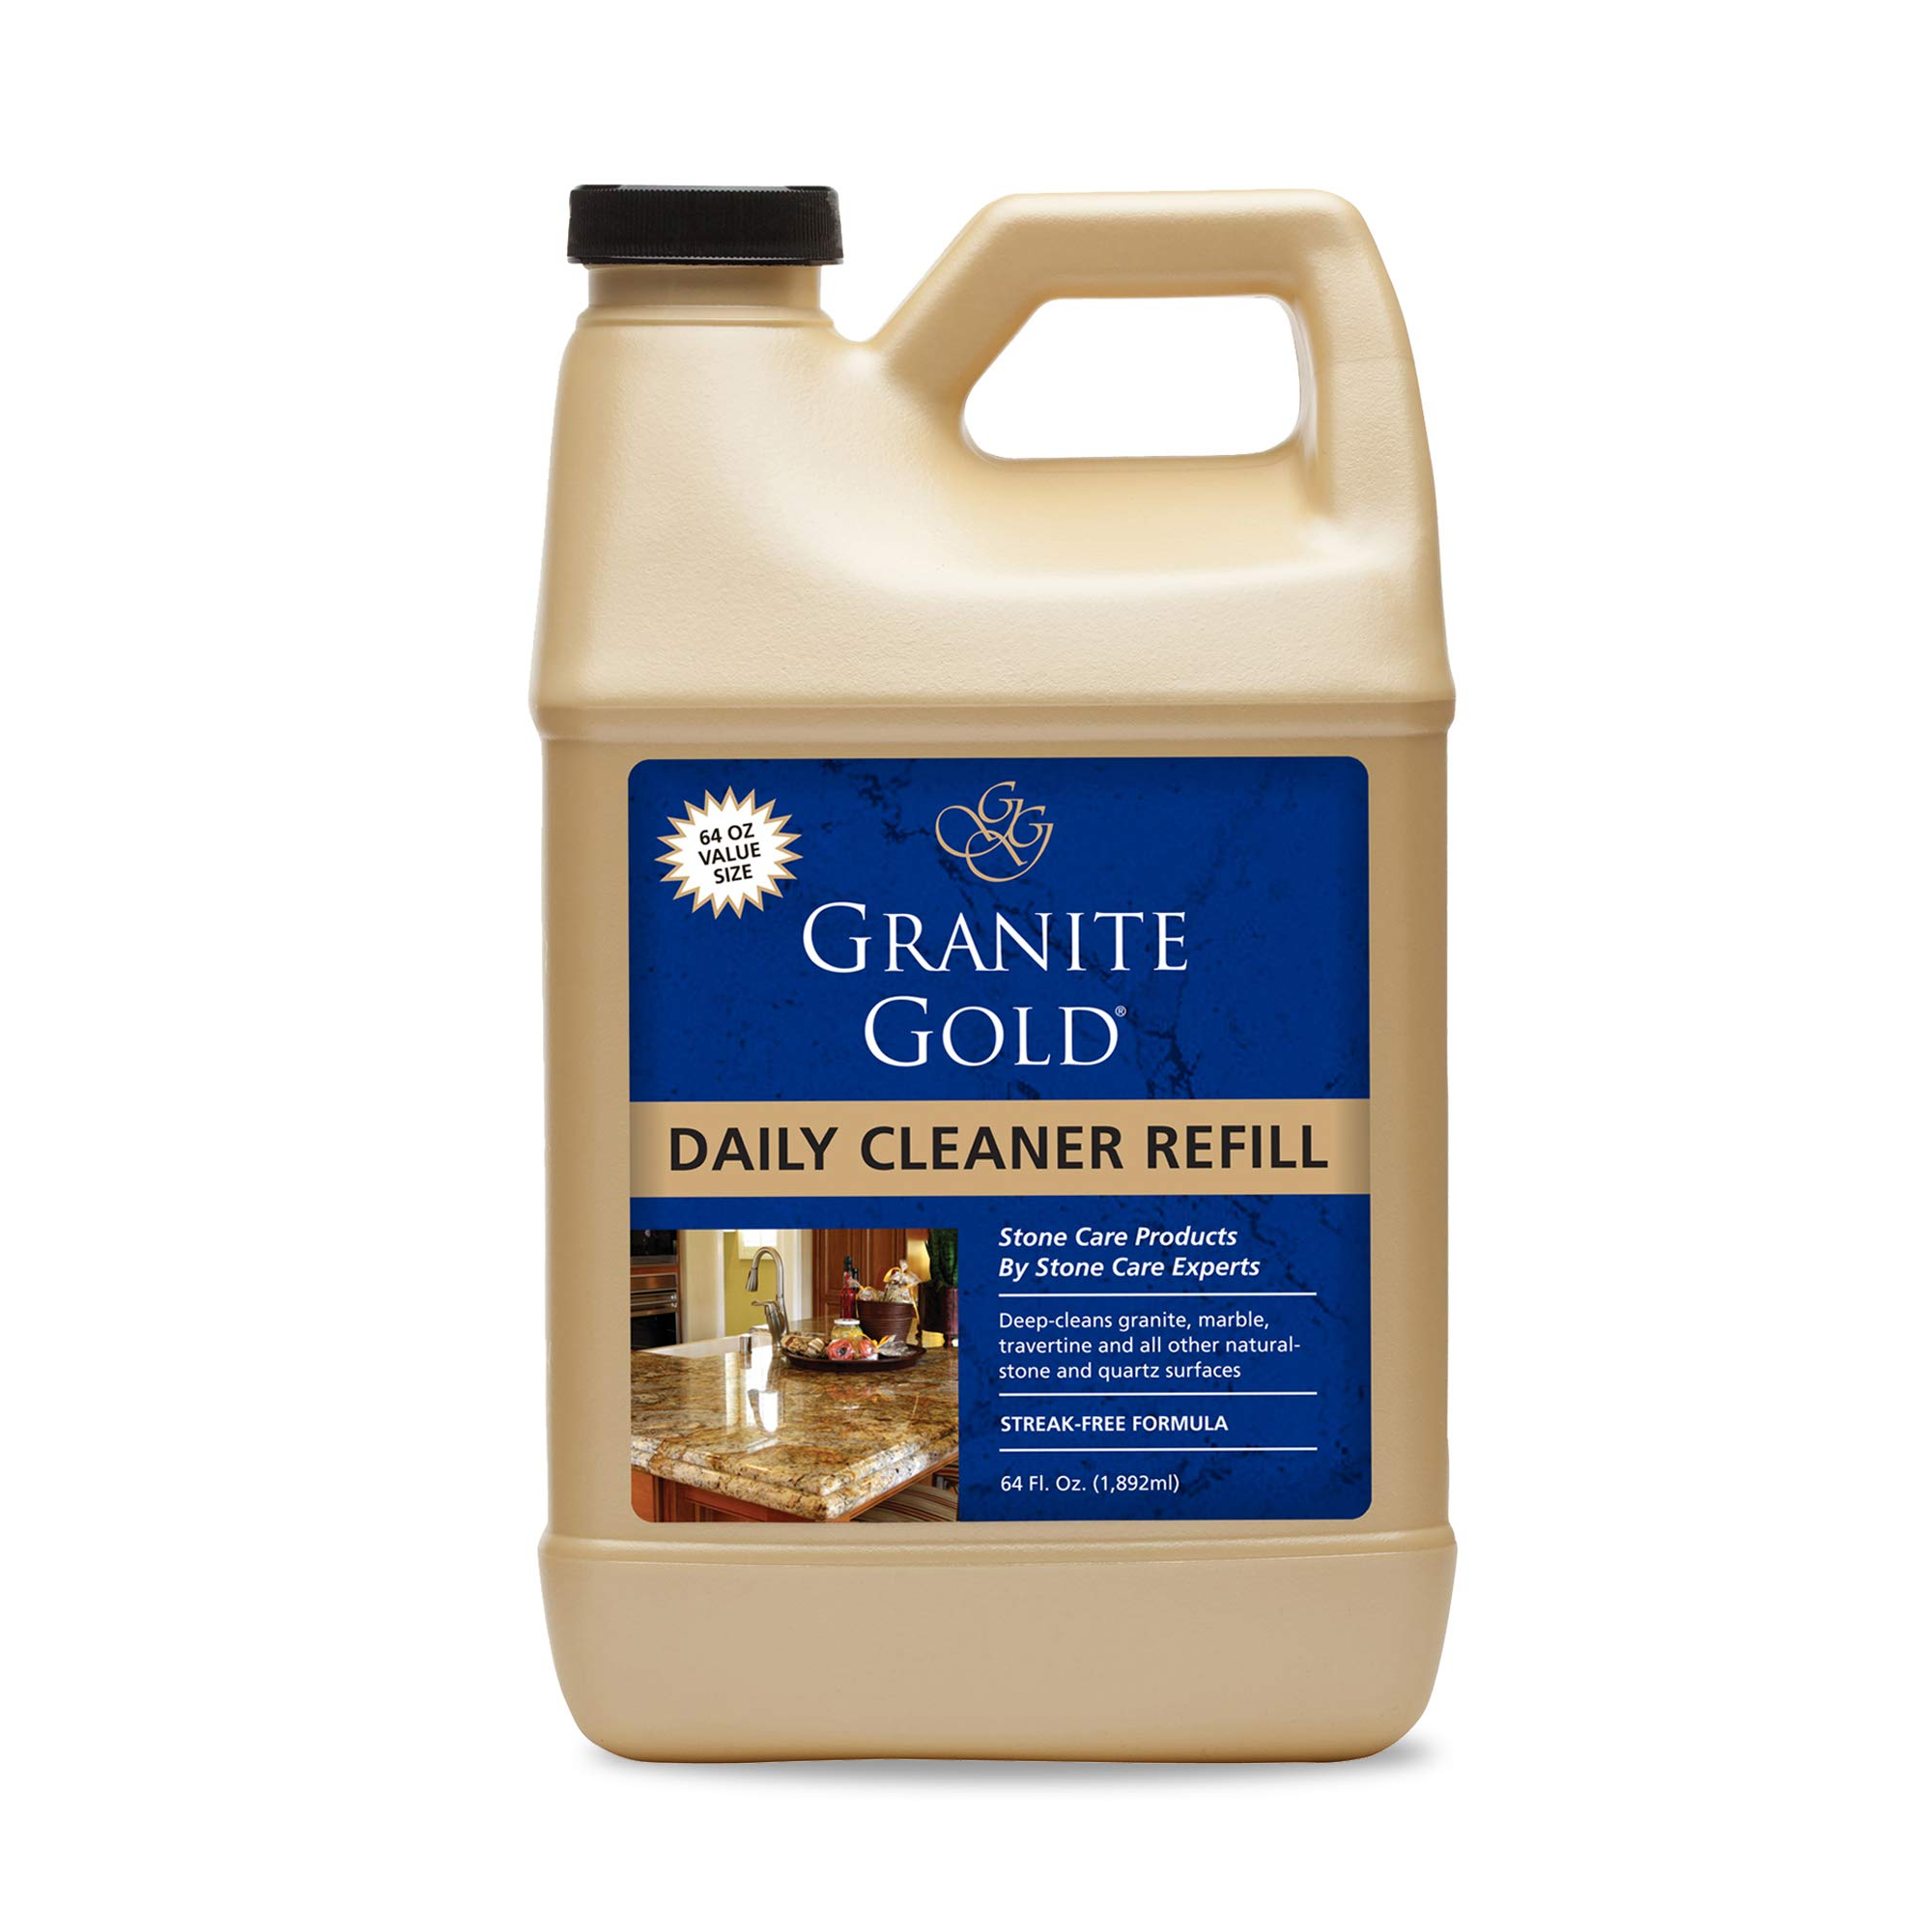 Granite Gold Daily Cleaner Refill Streak Free Cleaning For Granite Marble Travertine Quartz Natural Stone Countertops Floors Made In The Usa 64 Fl Oz